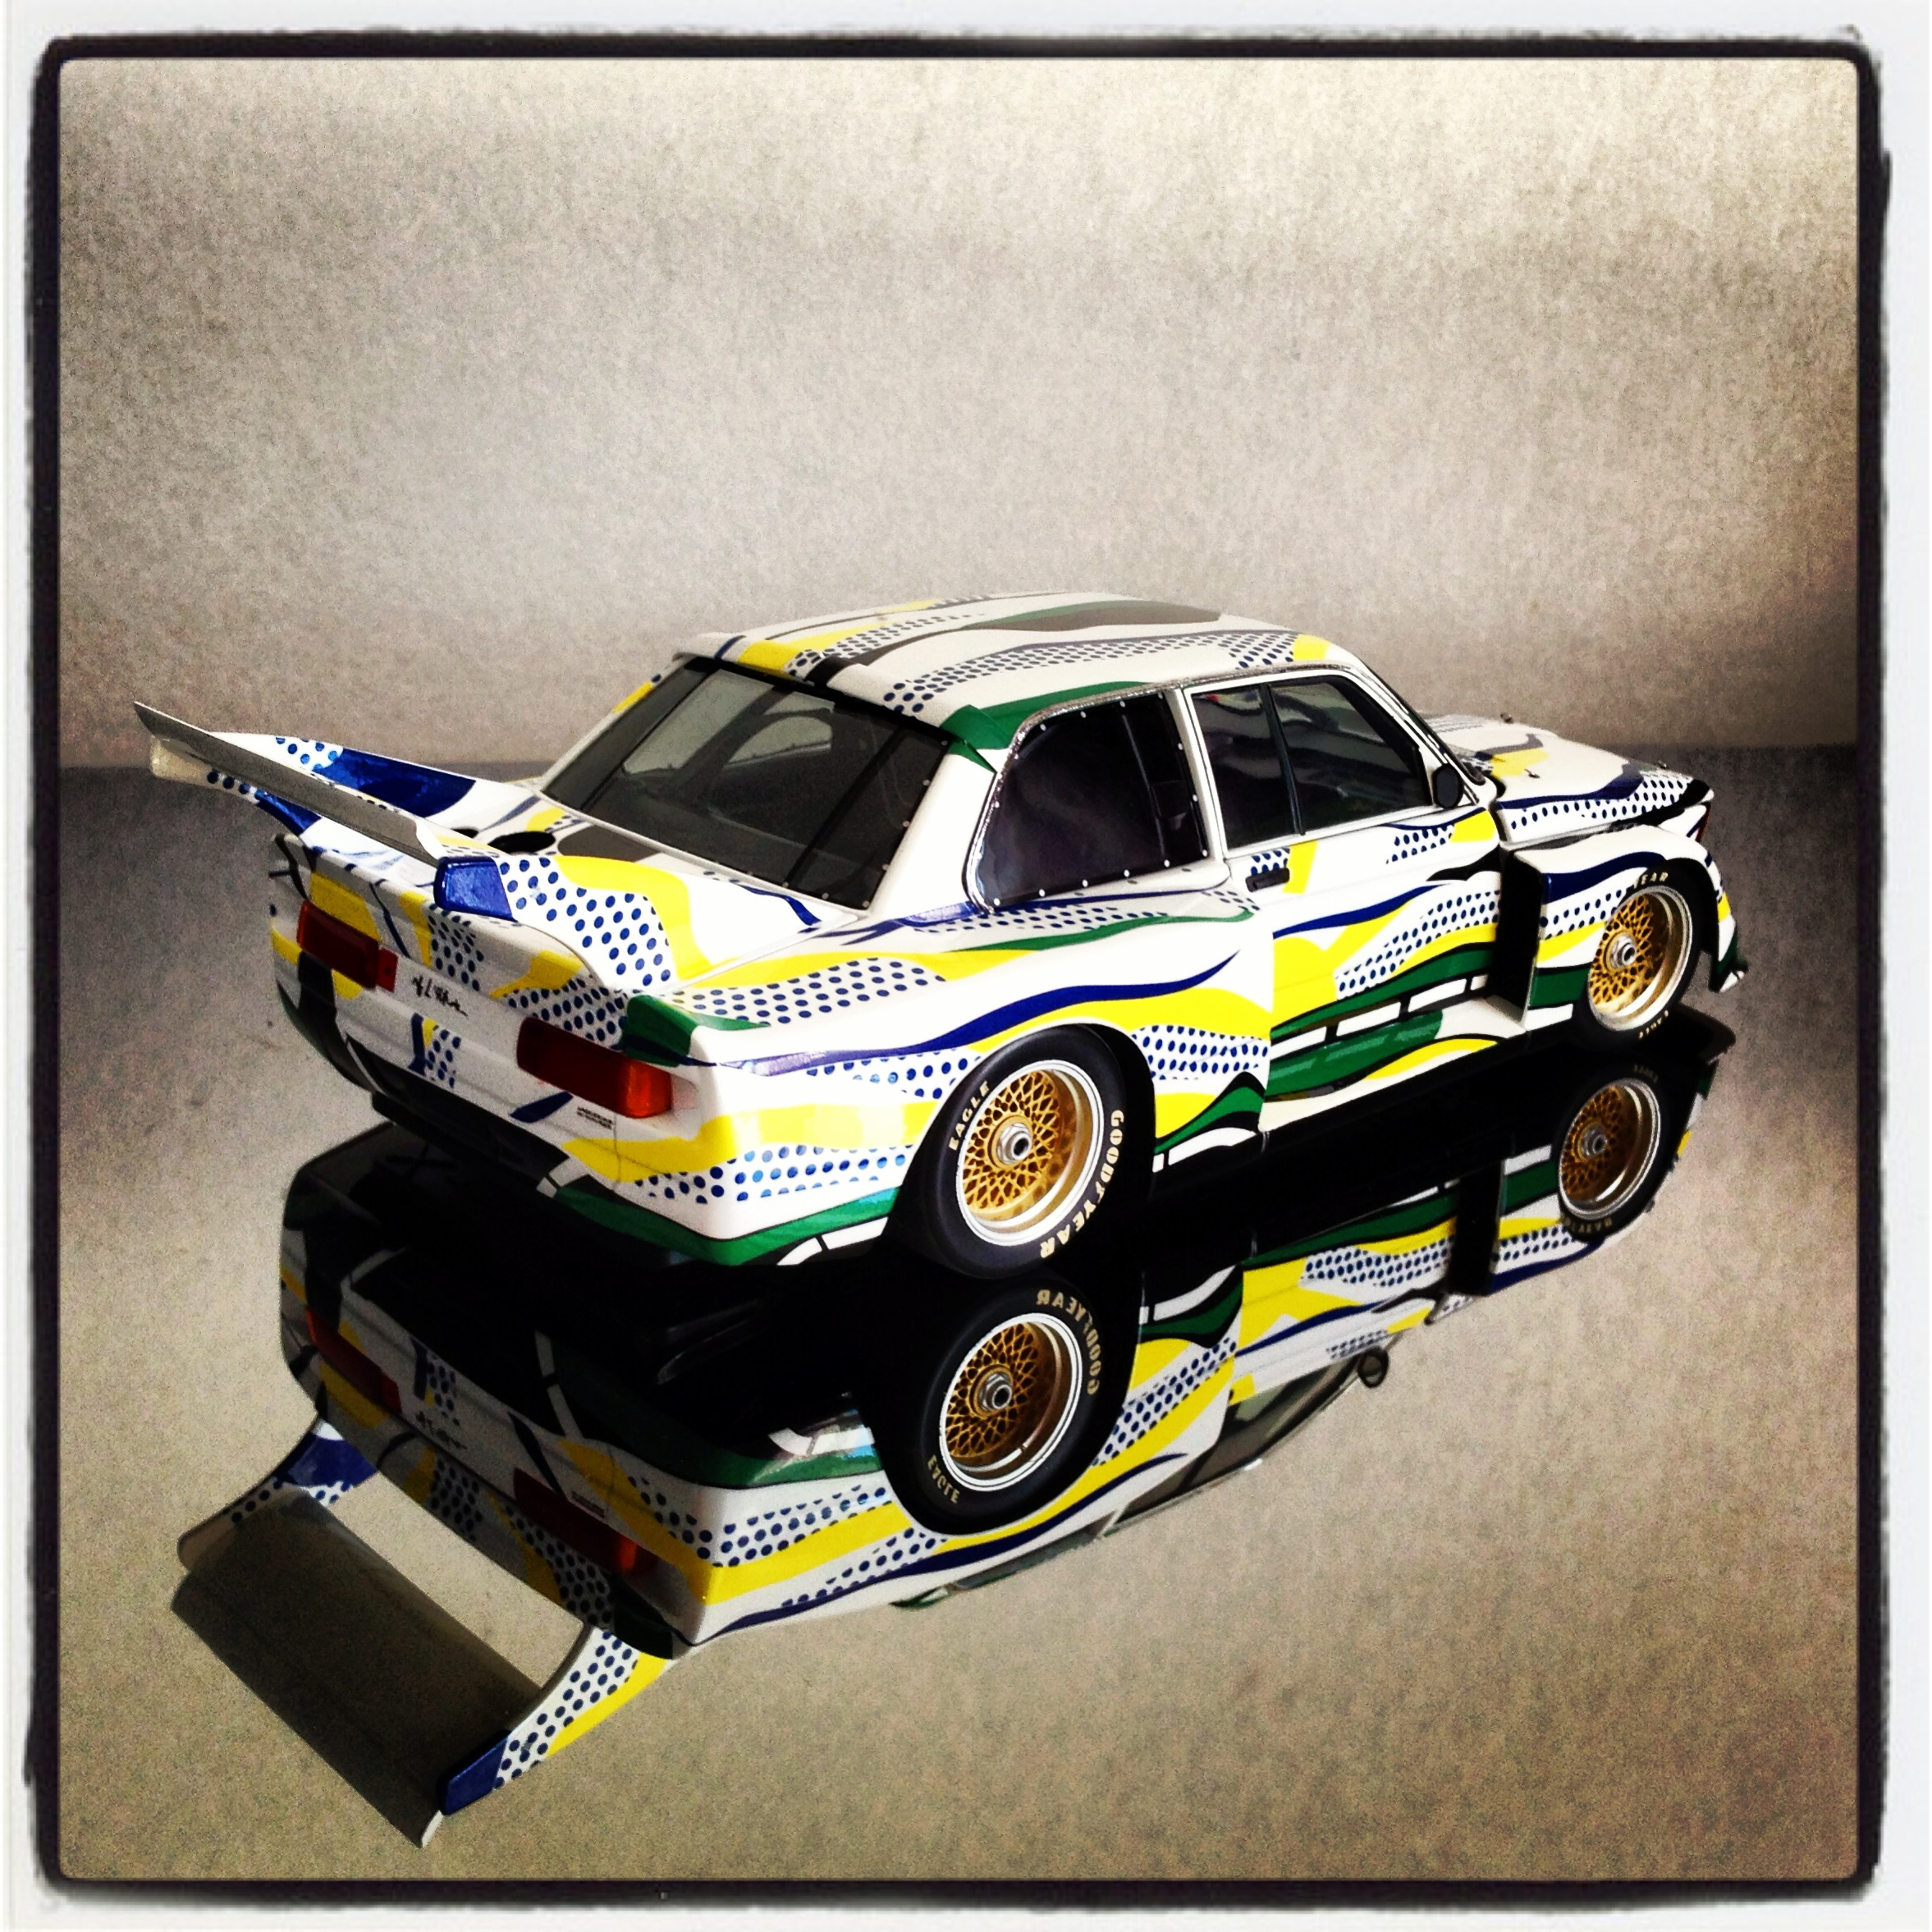 BMW 320i group 5, Roy Lichtenstein, 1977 (minichamps)